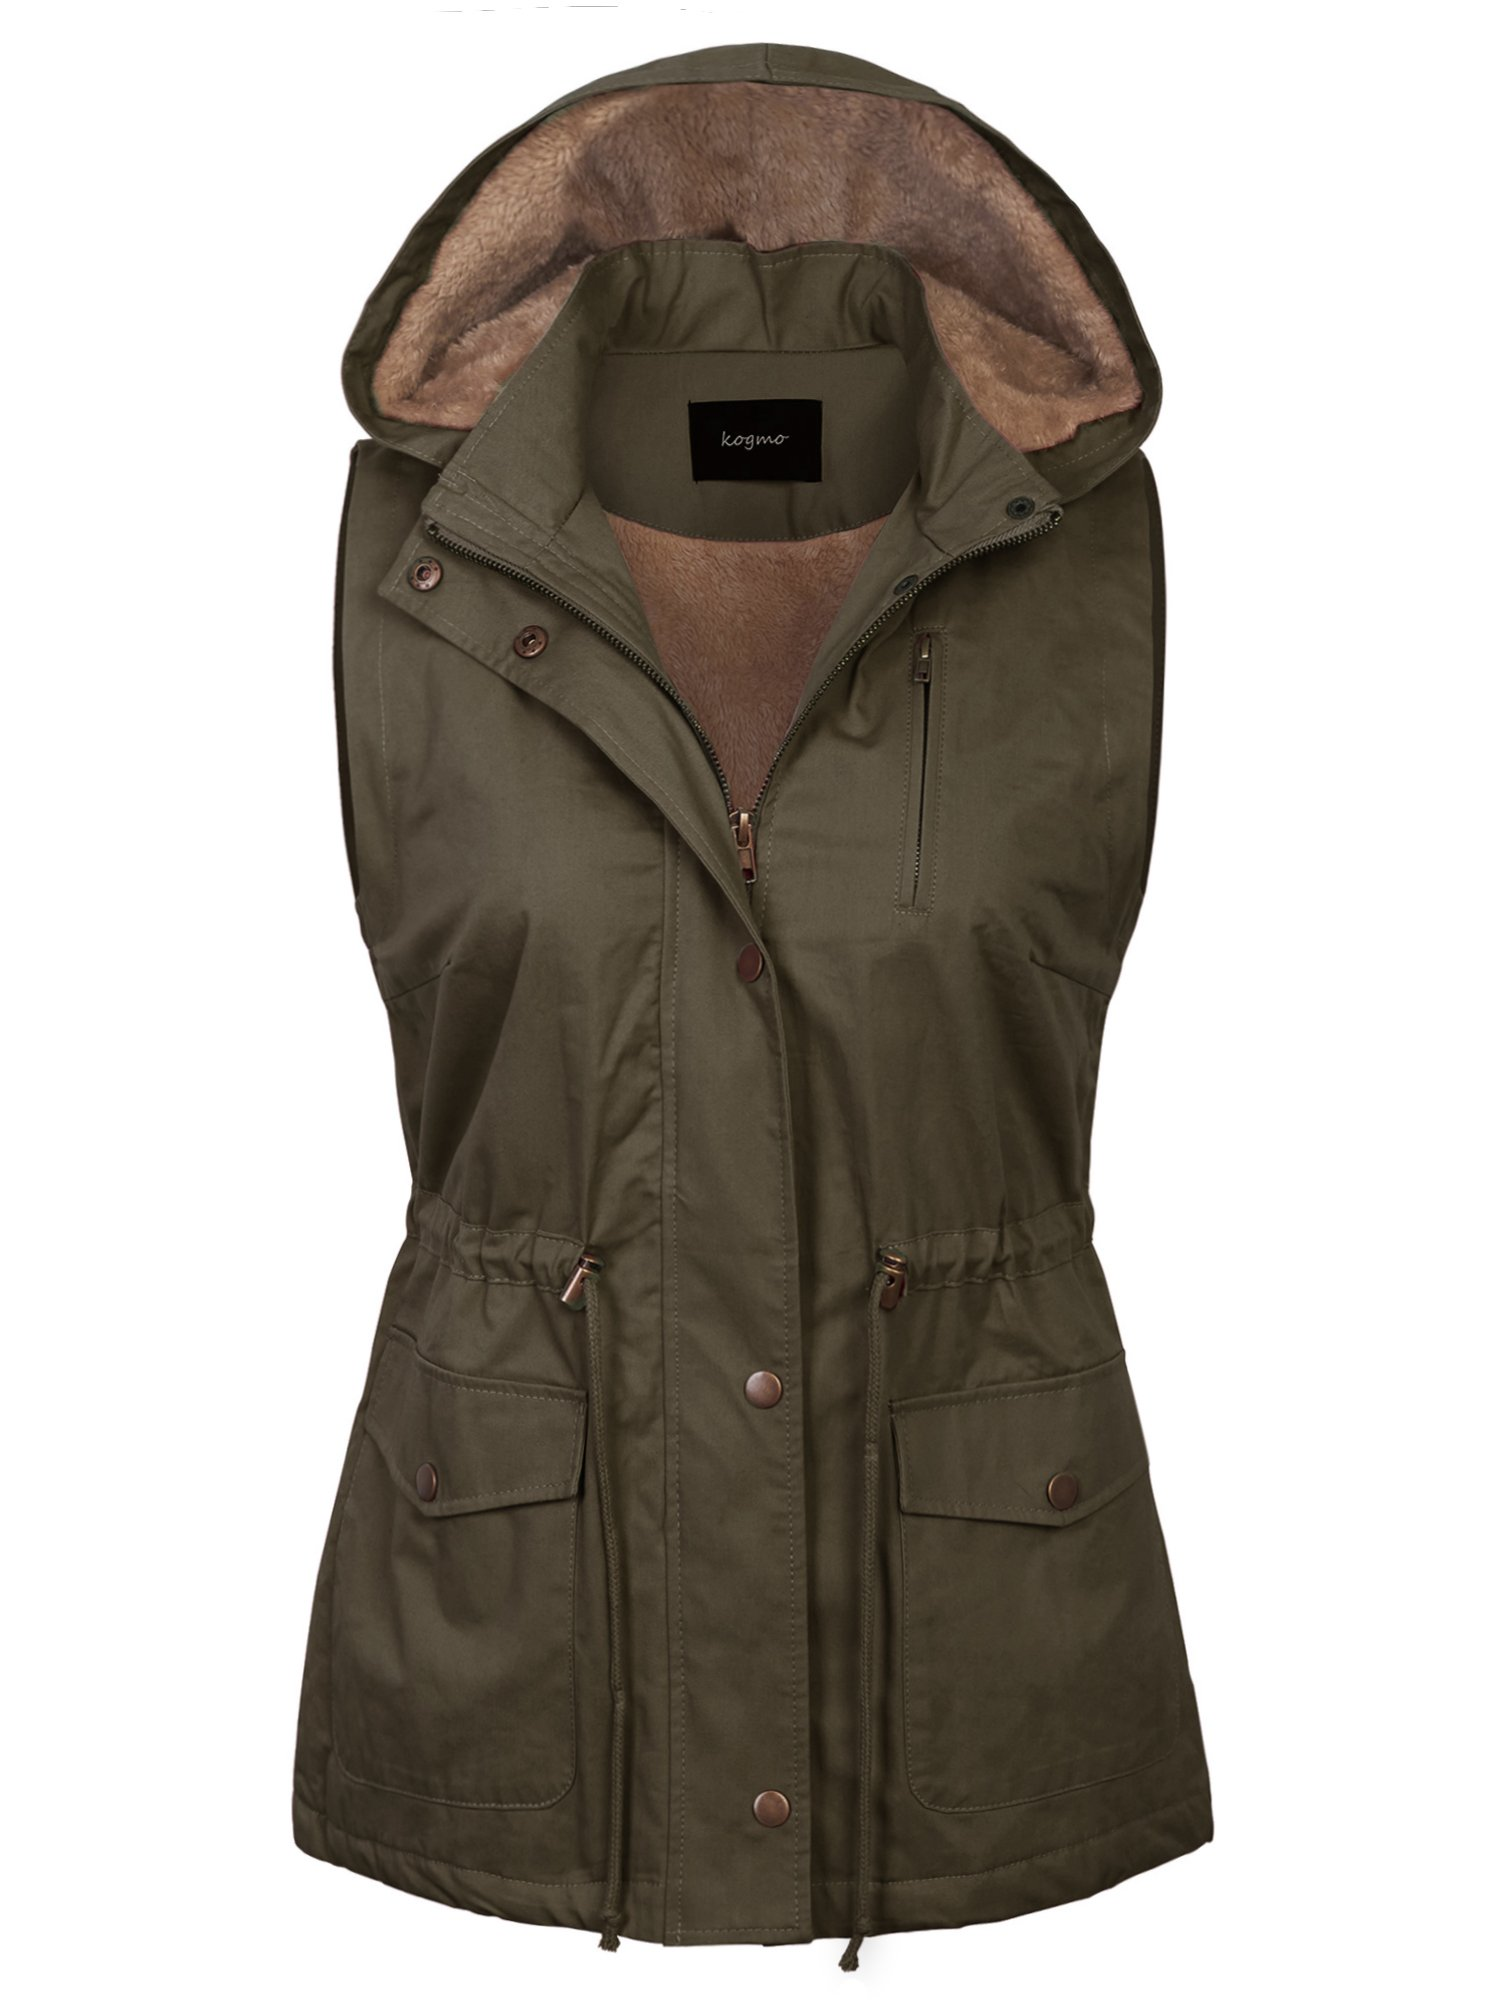 KOGMO Womens Fur Lined Anorak Safari Vest with Detachable Hoodie (S-3X)-S-Olive by KOGMO